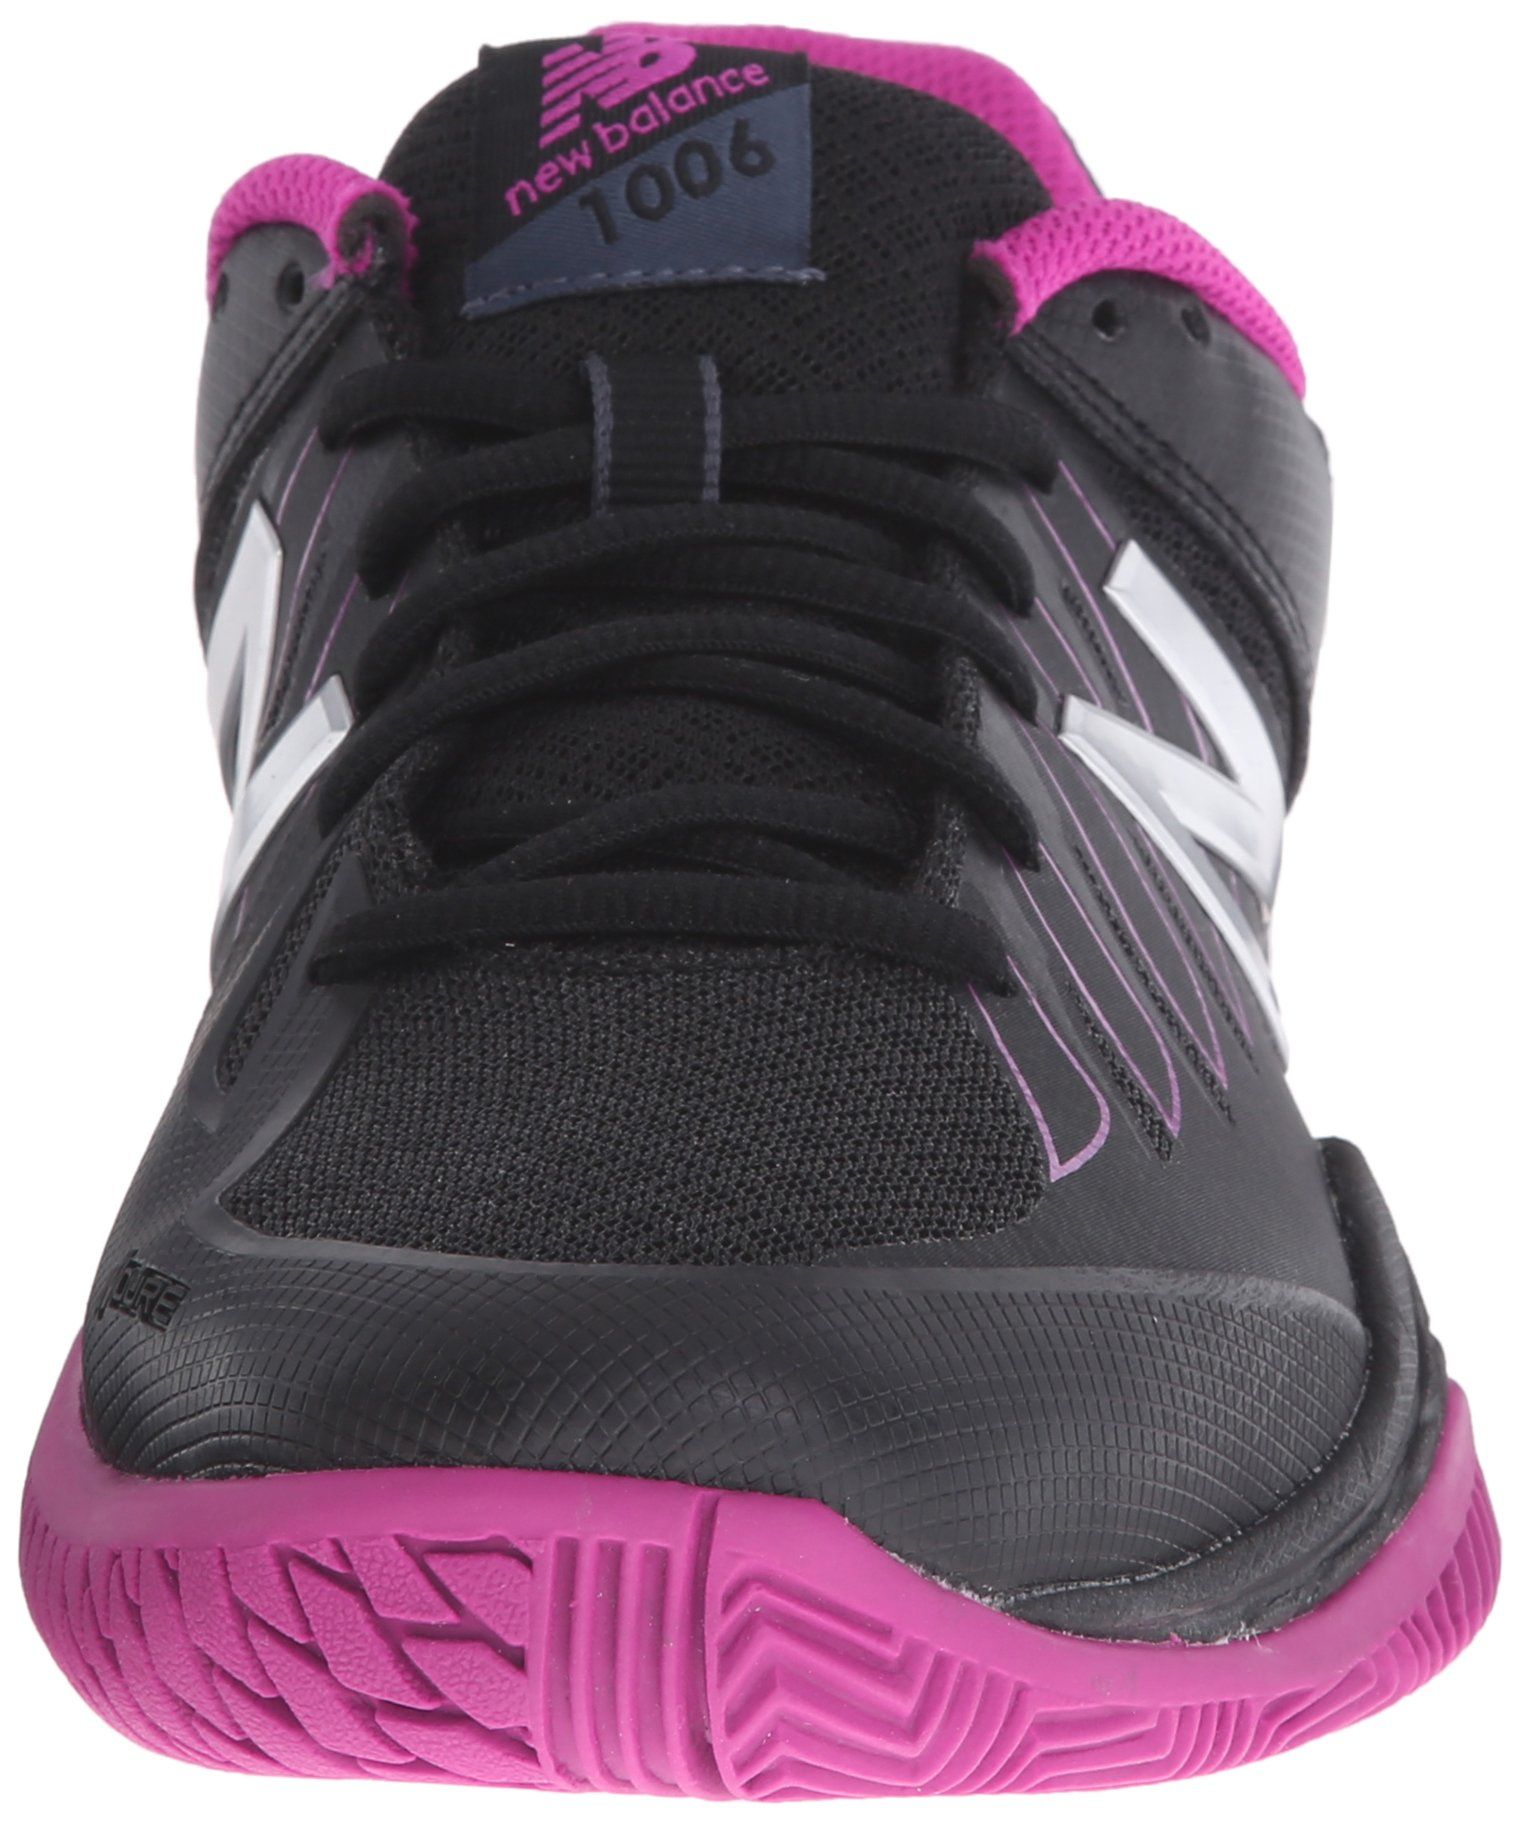 New Balance Womens WC1006v1 Tennis Shoe Black/Pink 9 D US